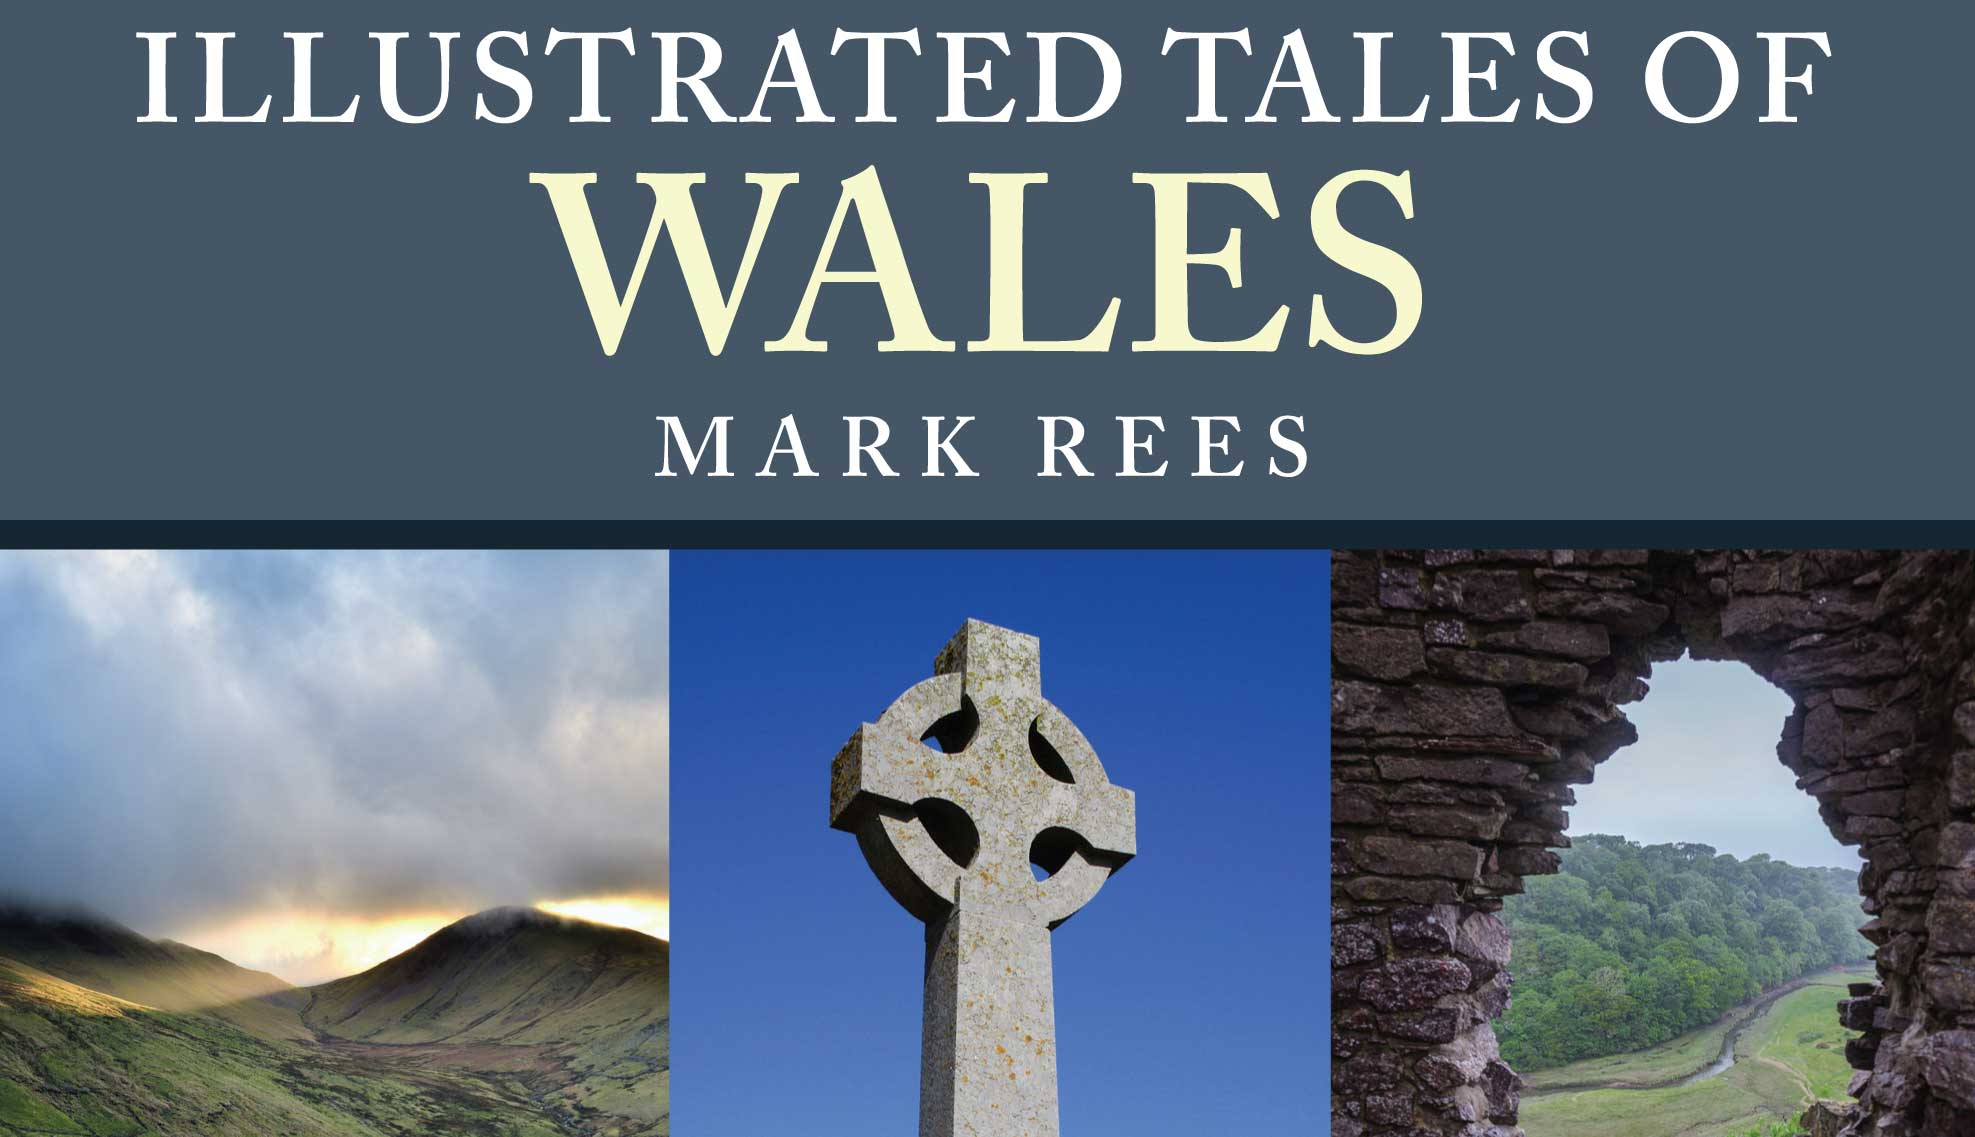 Illustrated Tales of Wales, a new book of Welsh folklore, myths and legends from Mark Rees